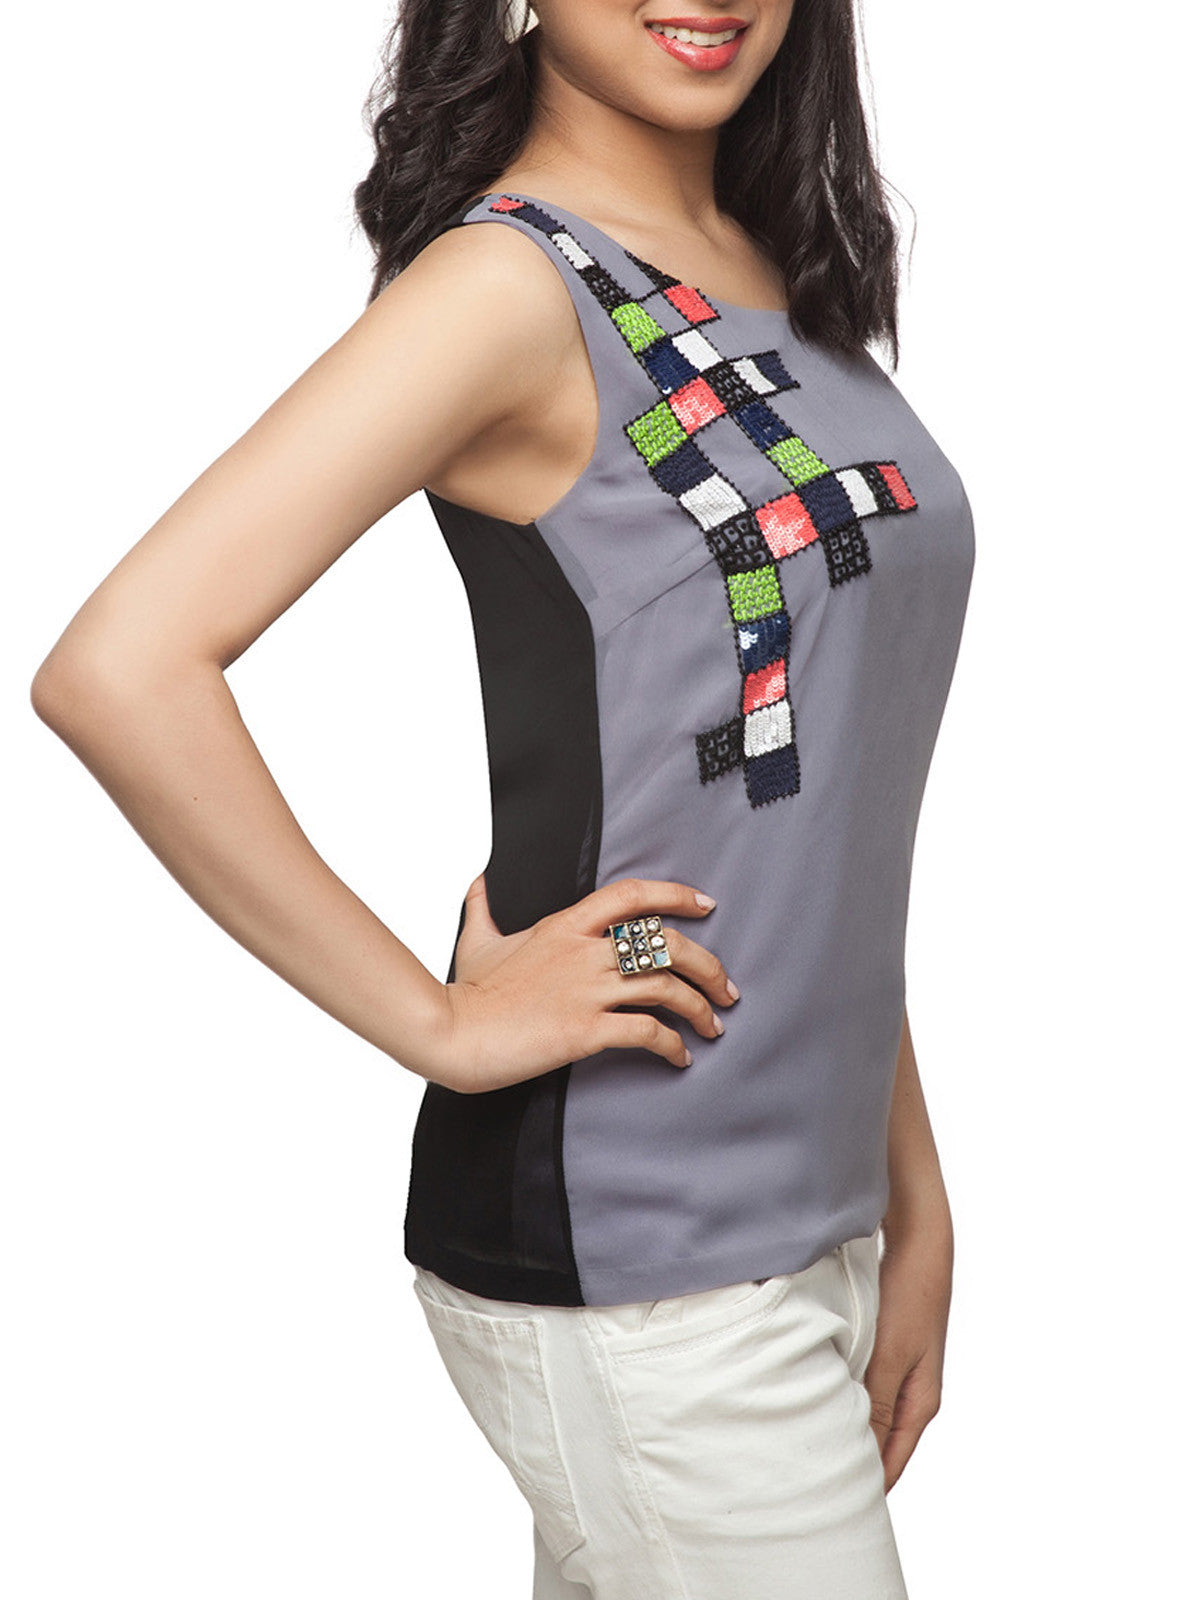 Kahina Chequered Tank Top - ETHER  - 1